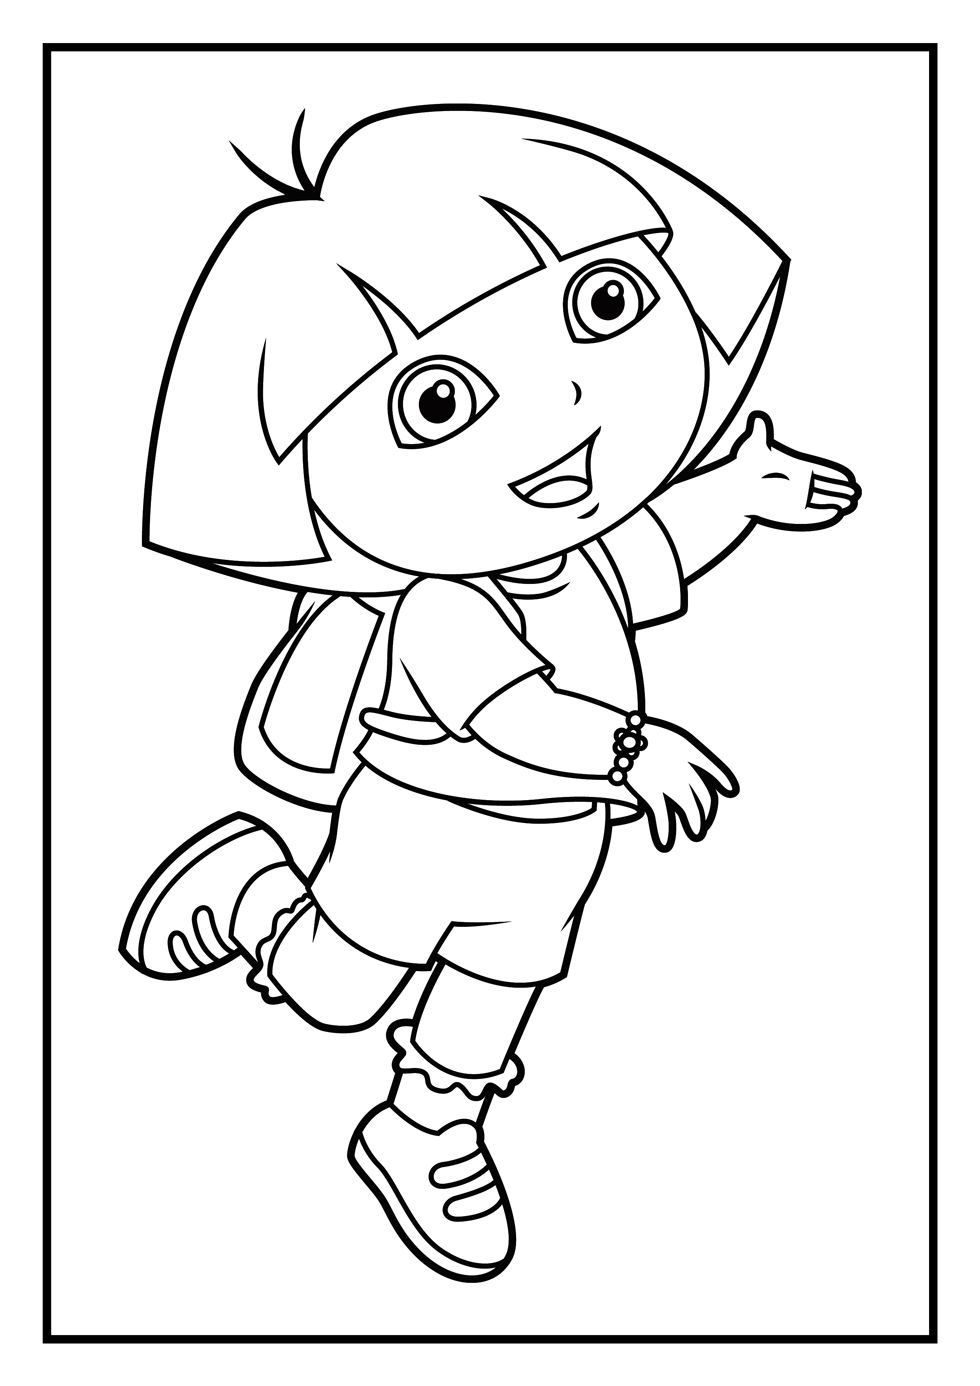 printable dora coloring pages dora coloring pages for kids printable free coloring pages dora printable pages coloring